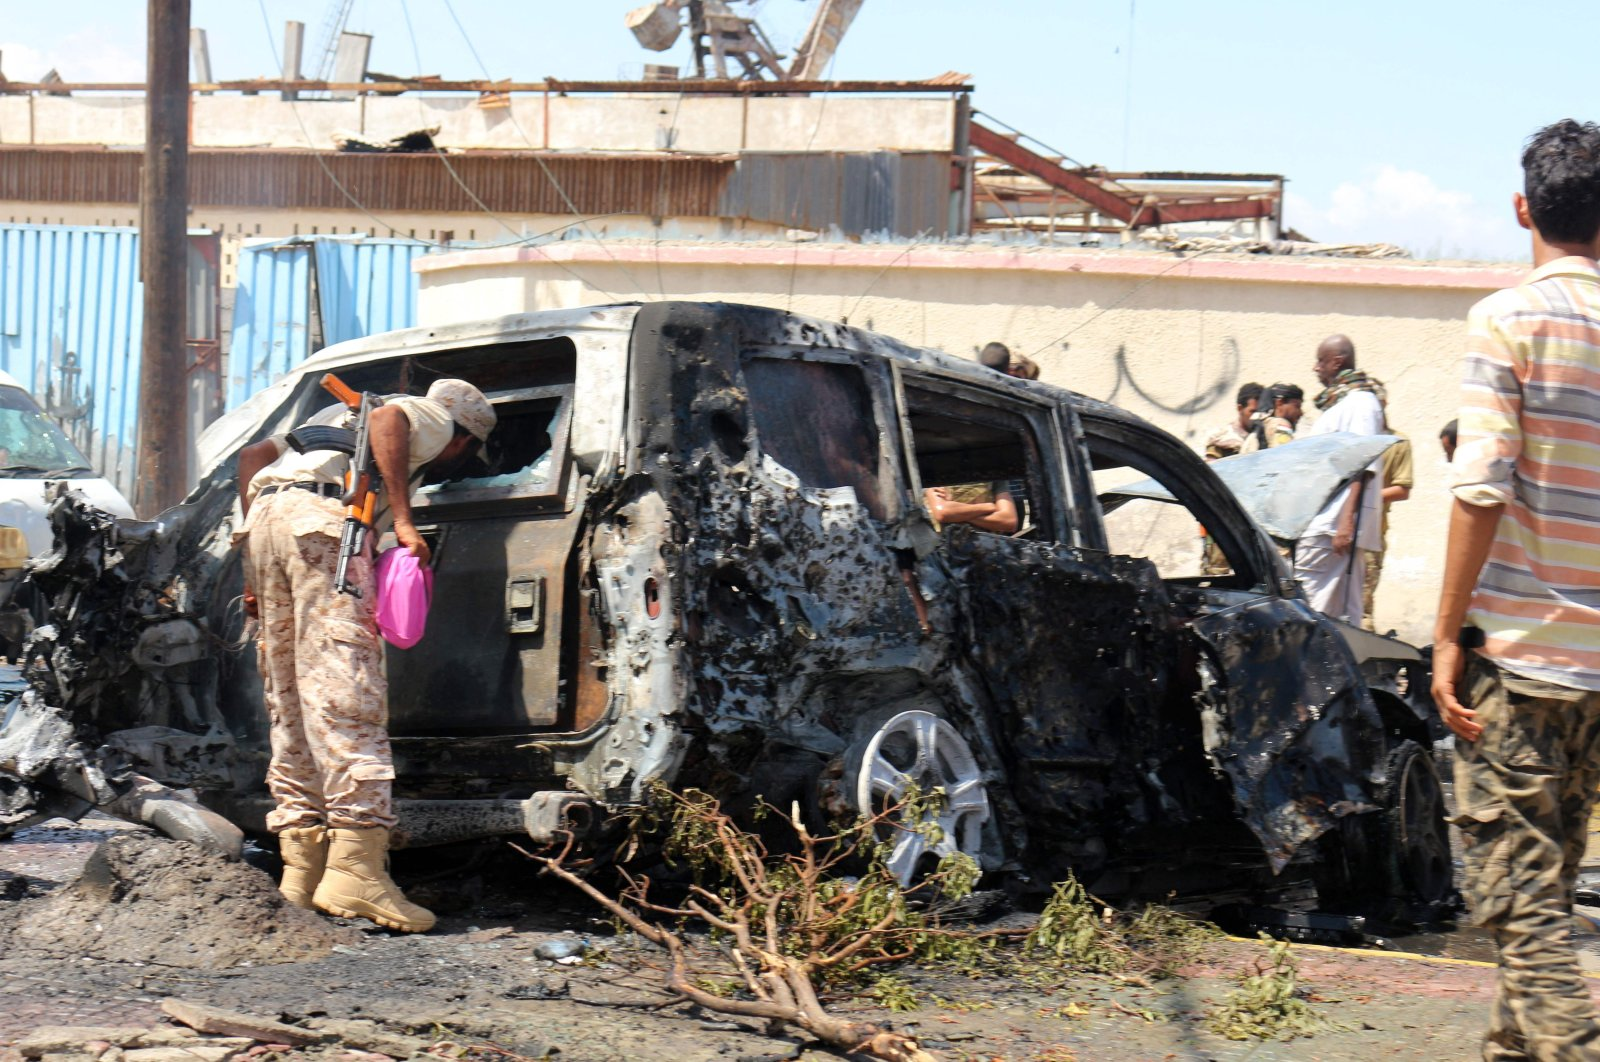 Yemeni security forces and rescue teams gather around the carcass of a burnt car following an explosion that hit Yemen's southern port city of Aden, Oct. 10, 2021. (AFP Photo)